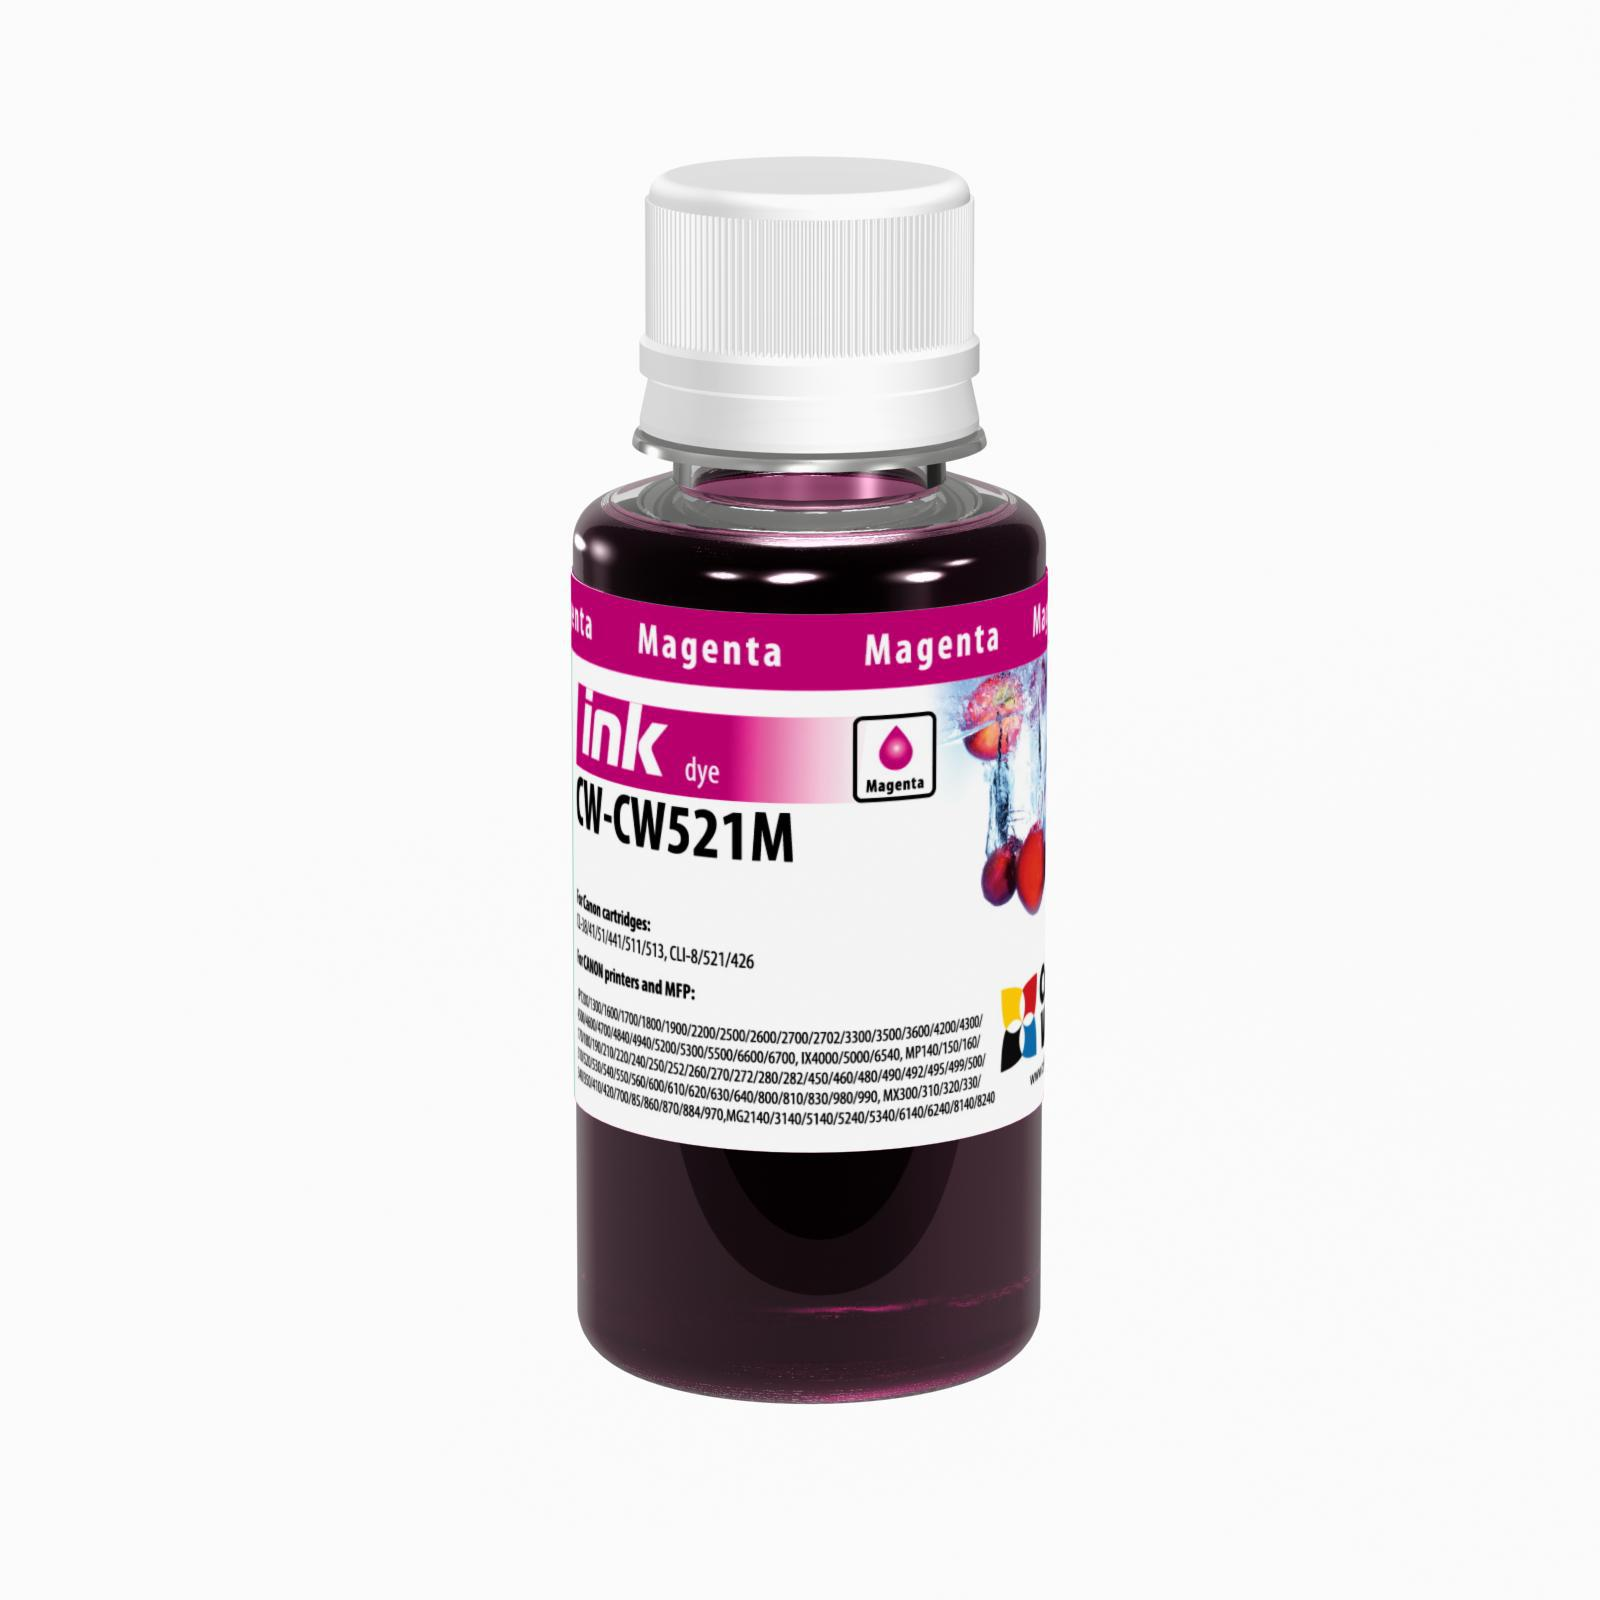 ColorWay Atrament Canon Magenta - 100ml/200ml Objem fľaše: 100ml